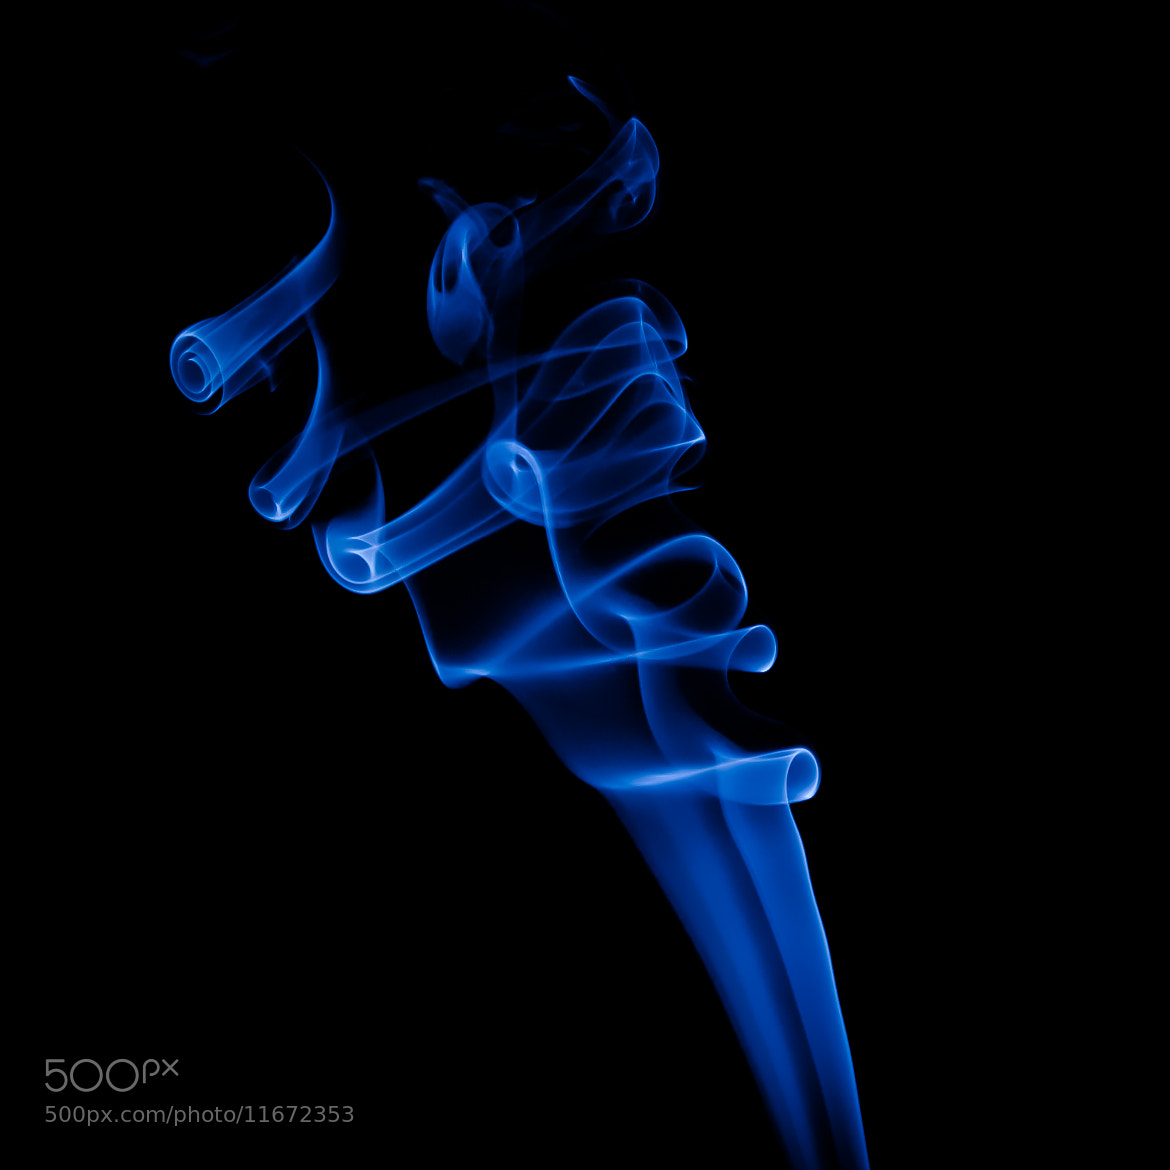 Photograph Smoke by Christophe SIMONNEAU on 500px